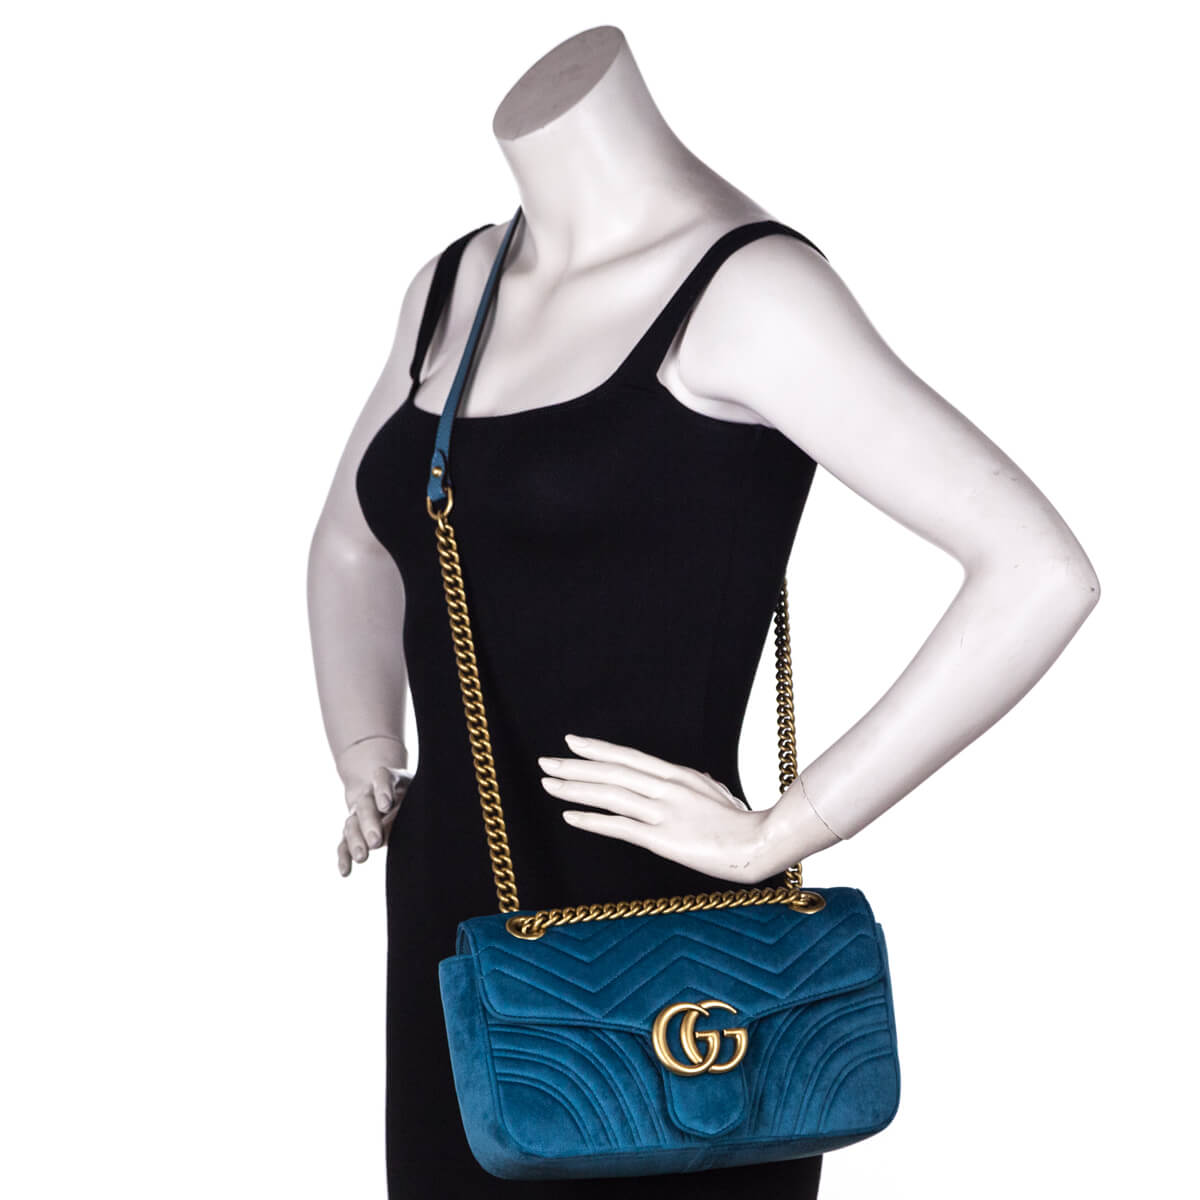 94e36ee4f51 ... Gucci Petrol Blue Velvet Small GG Marmont Shoulder Bag - LOVE that BAG  - Preowned Authentic ...